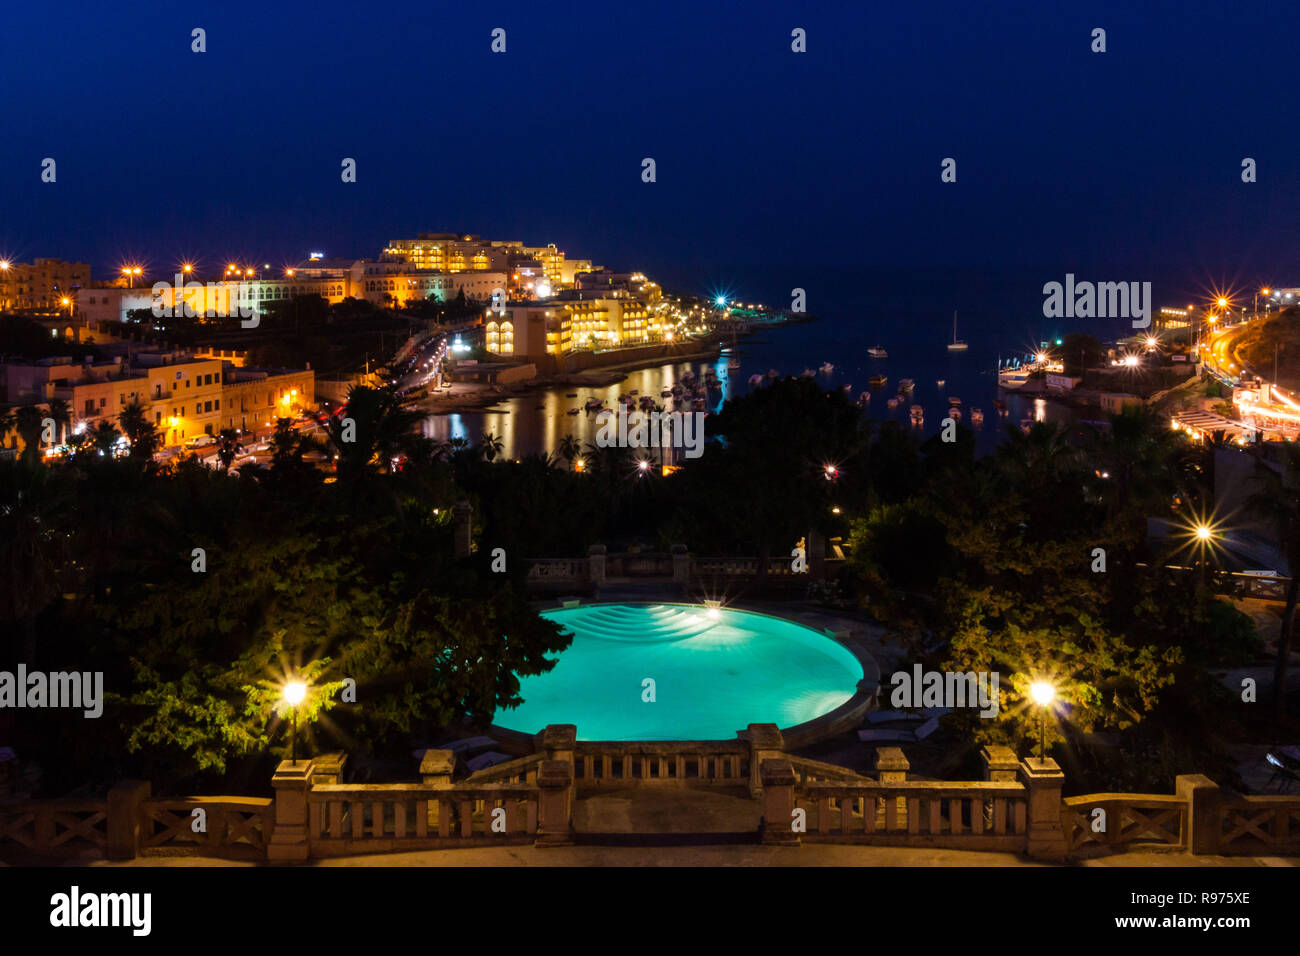 View of St. George's Bay seafront lights by night, with a blue luxury swimming pool and boats and yachts anchored. St Julian's (San Giljan), Central Region, Malta. Evening in Paceville district. - Stock Image